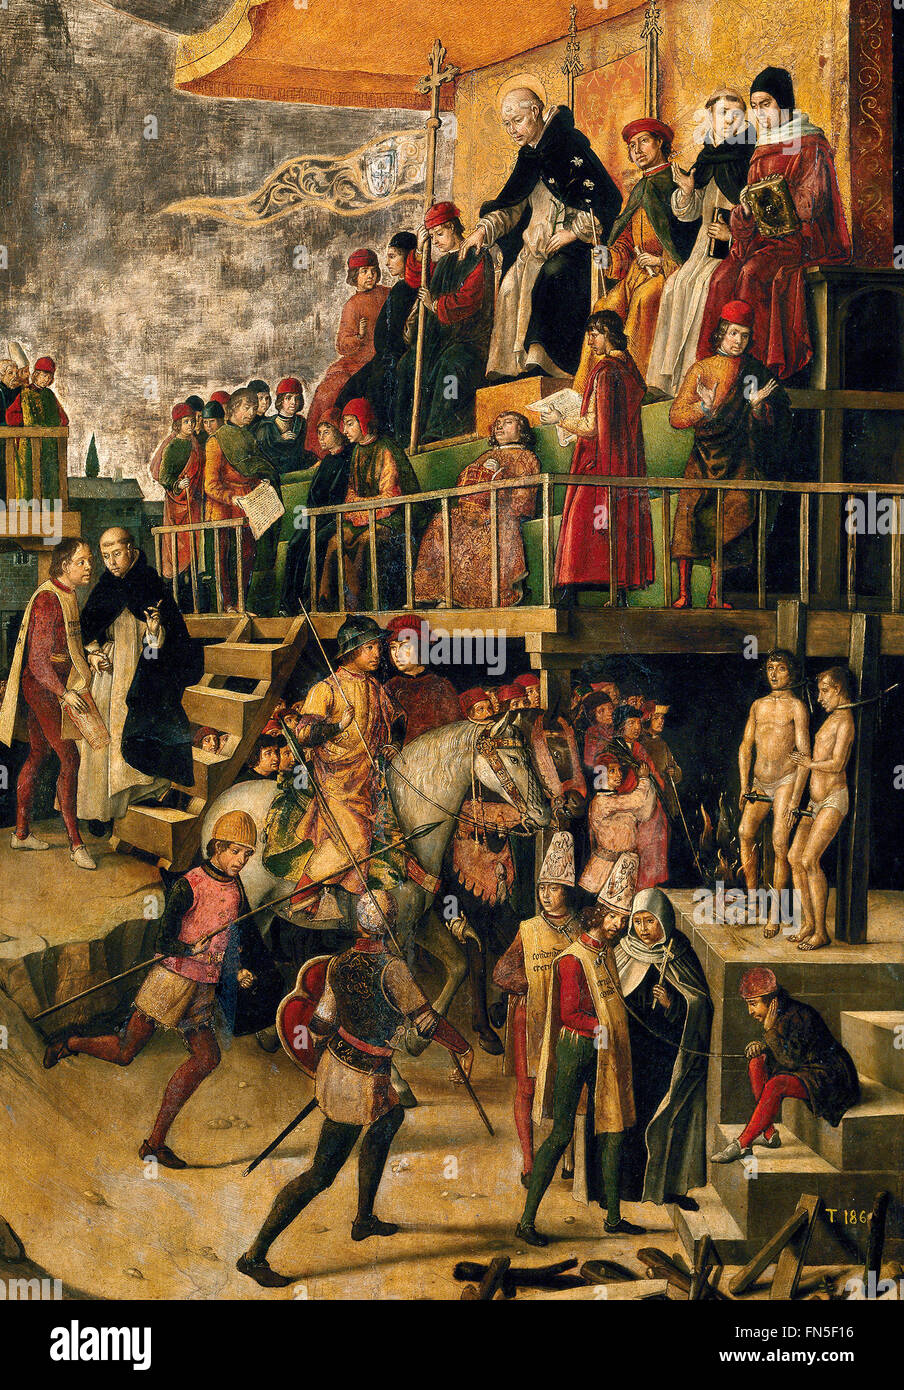 In this 15th-century depiction of the burning of Albigensians after an auto de fe, the condemned had been garroted - Stock Image